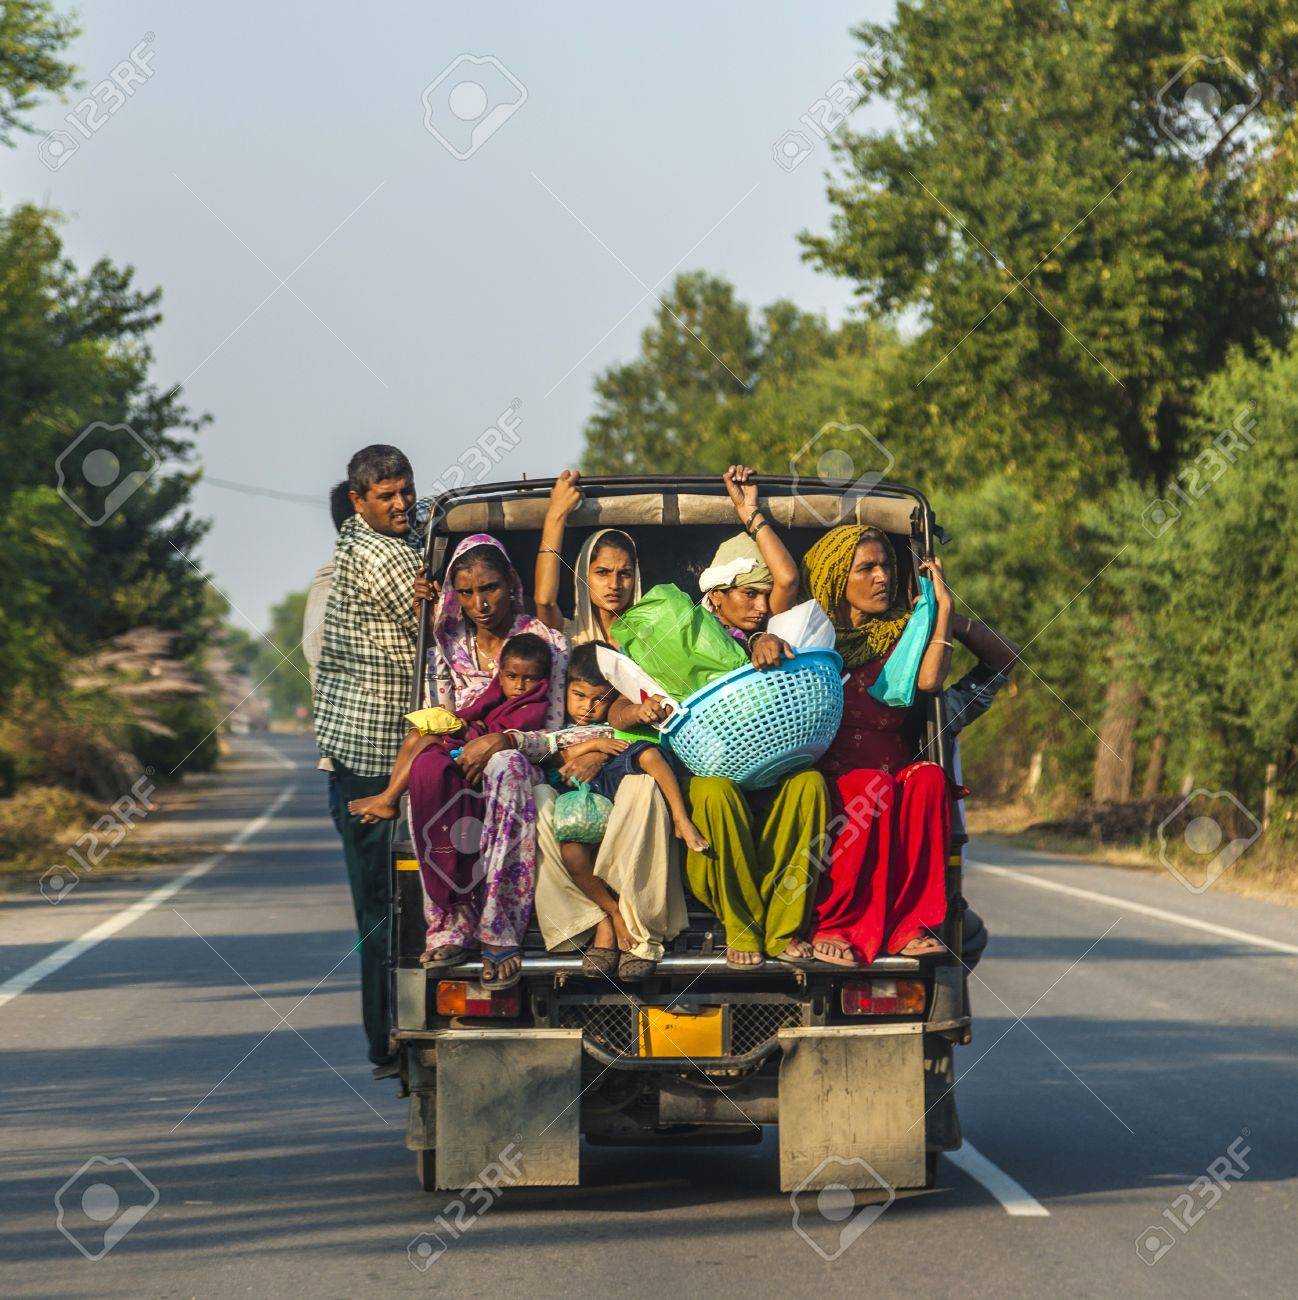 DAOLA, INDIA - 25 OCT: people on highway 71 in overloaded truck on OCT 24, 2012 in Daoloa, India. Overload ist the most dangerous reason for car accidents. Stock Photo - 17393197